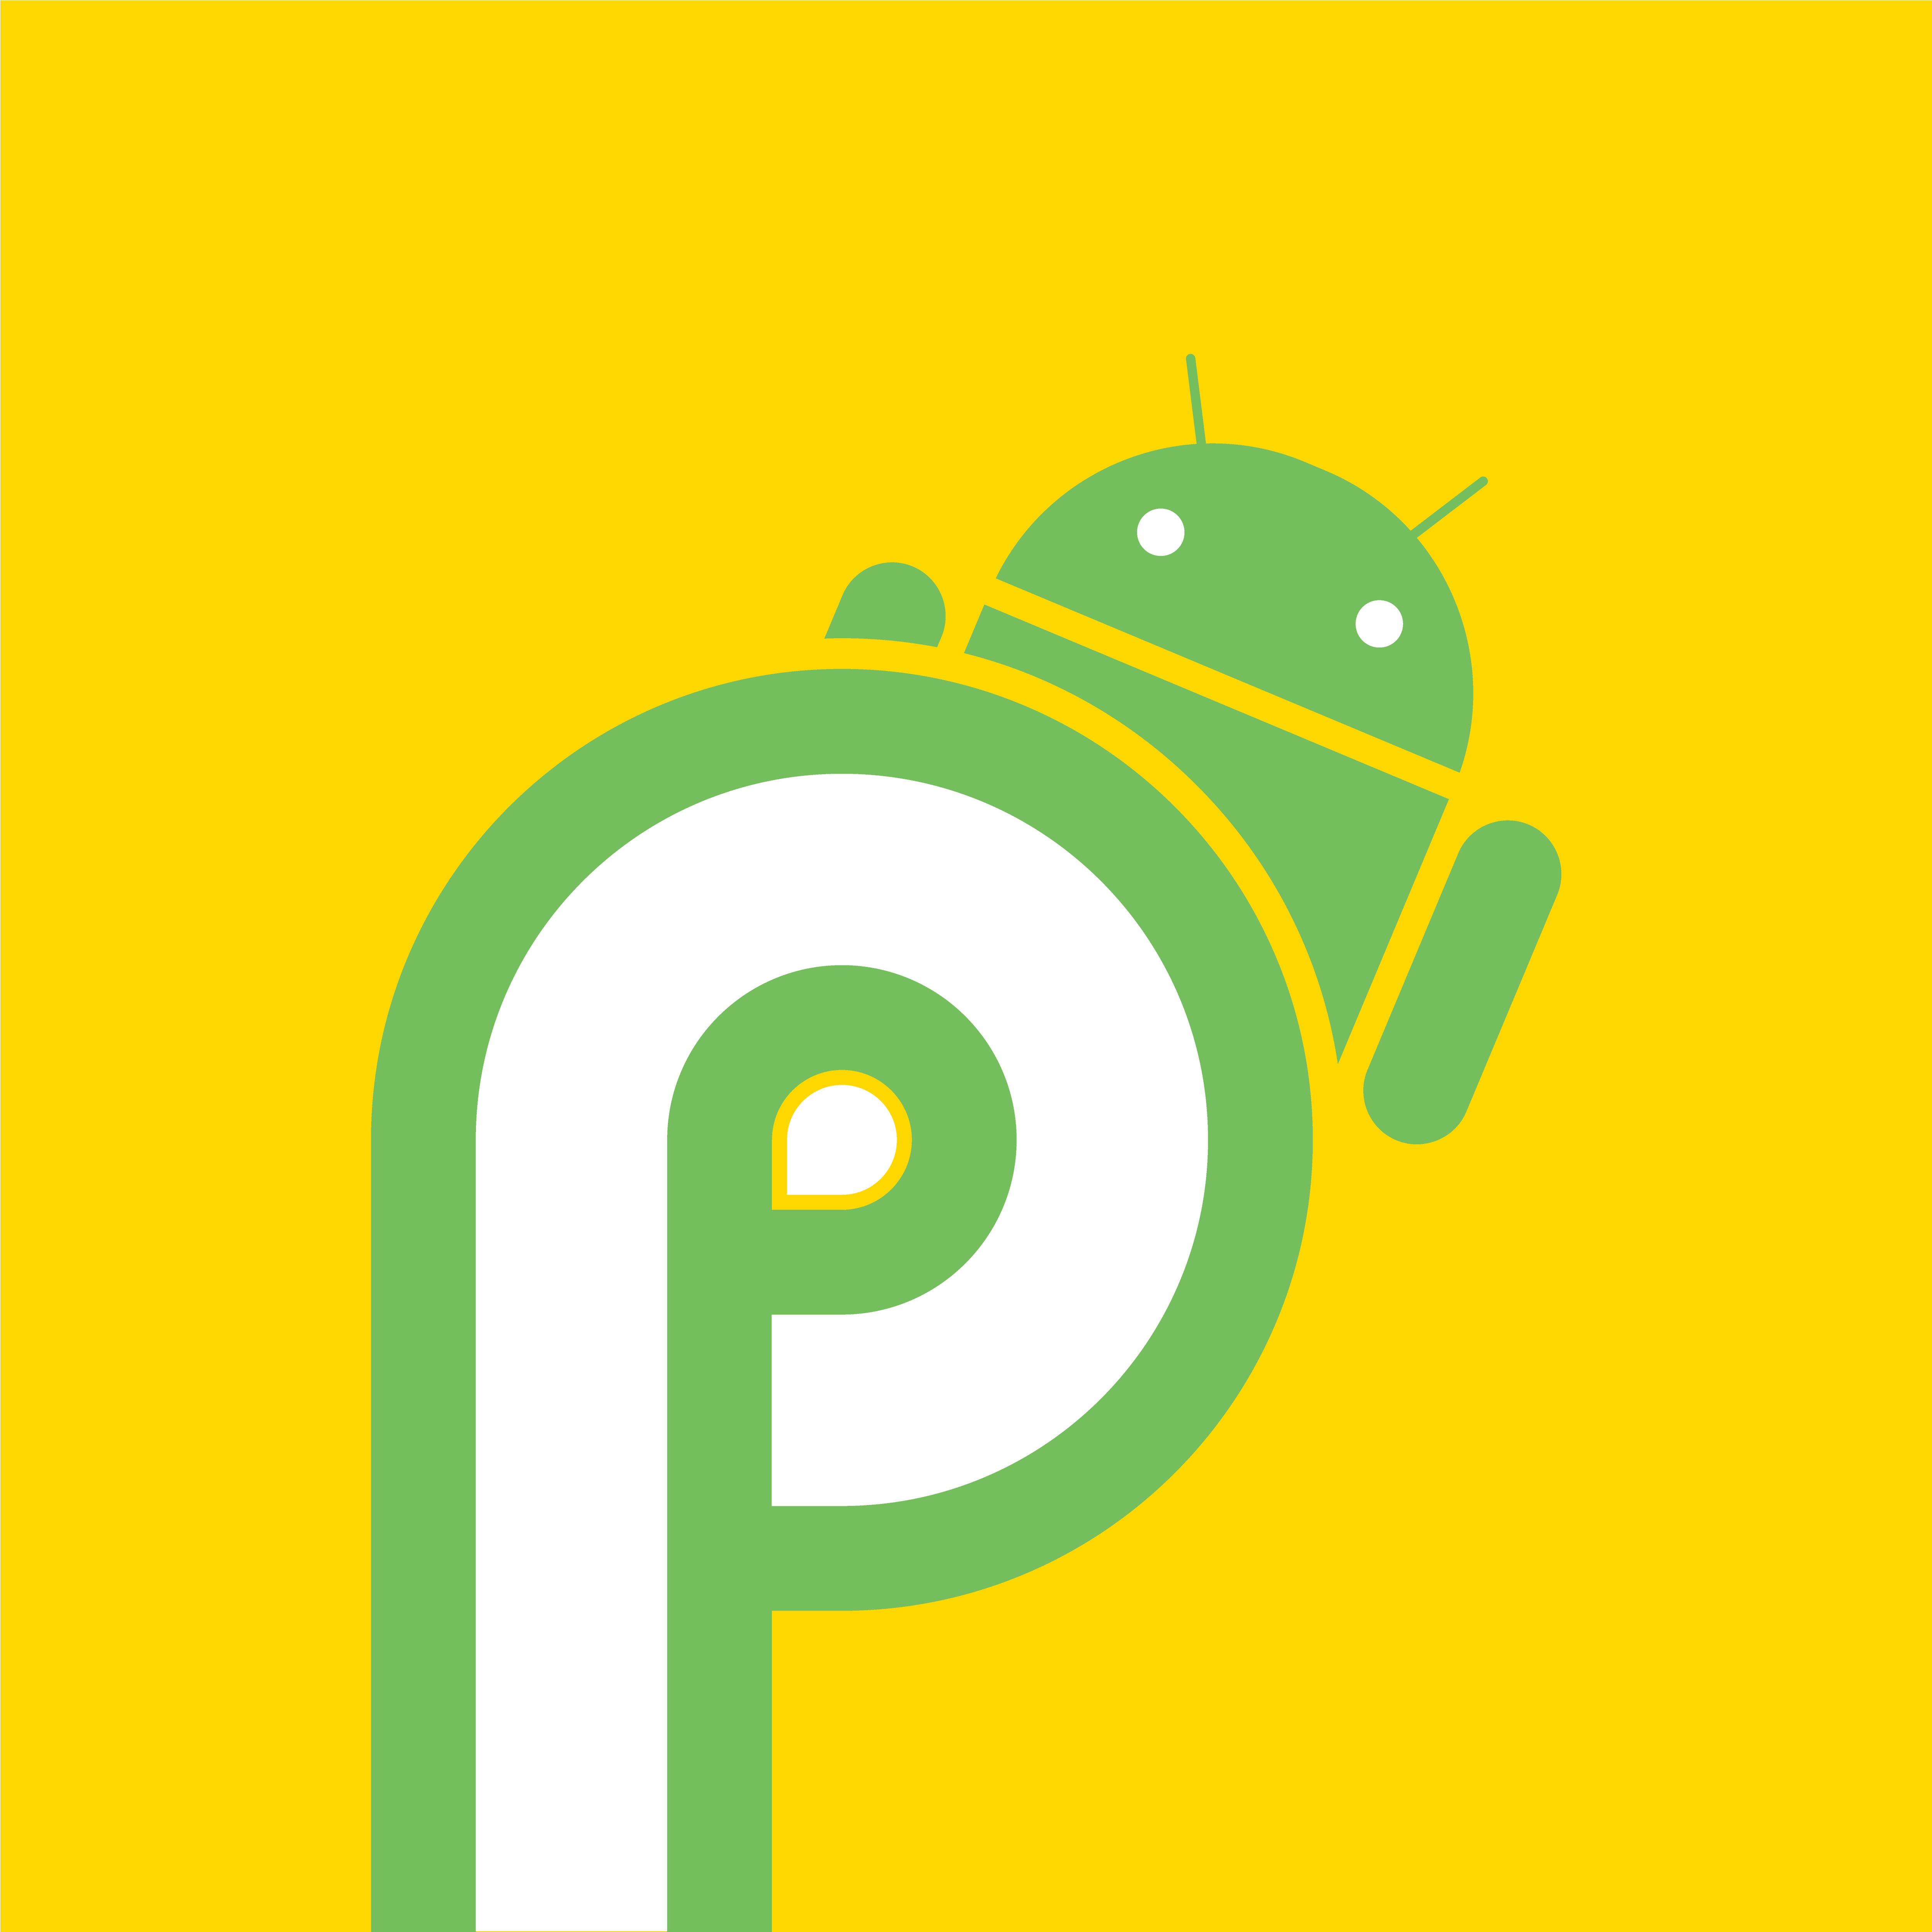 Android P developers plot battery power boost – IT PRO